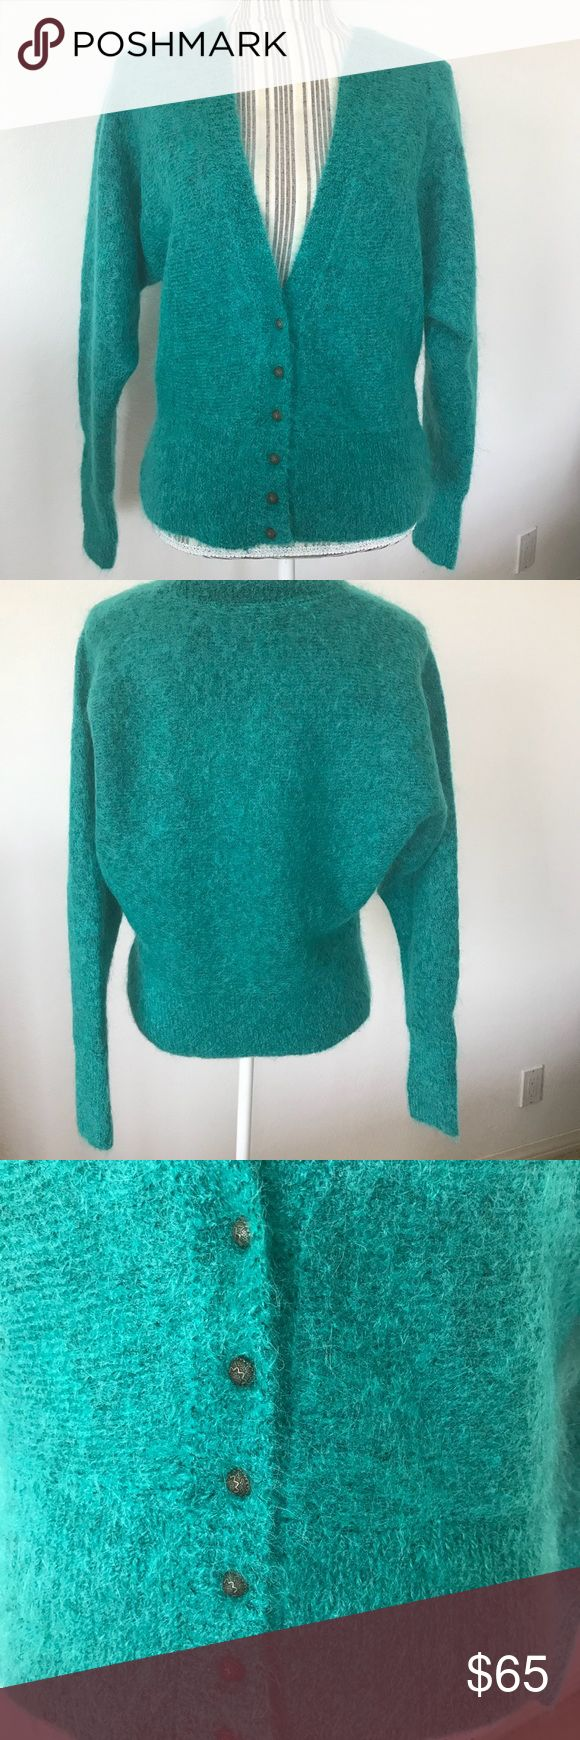 NWT Free People Turquoise Cardigan Turquoise cardigan with extra button. Free People Sweaters Cardigans